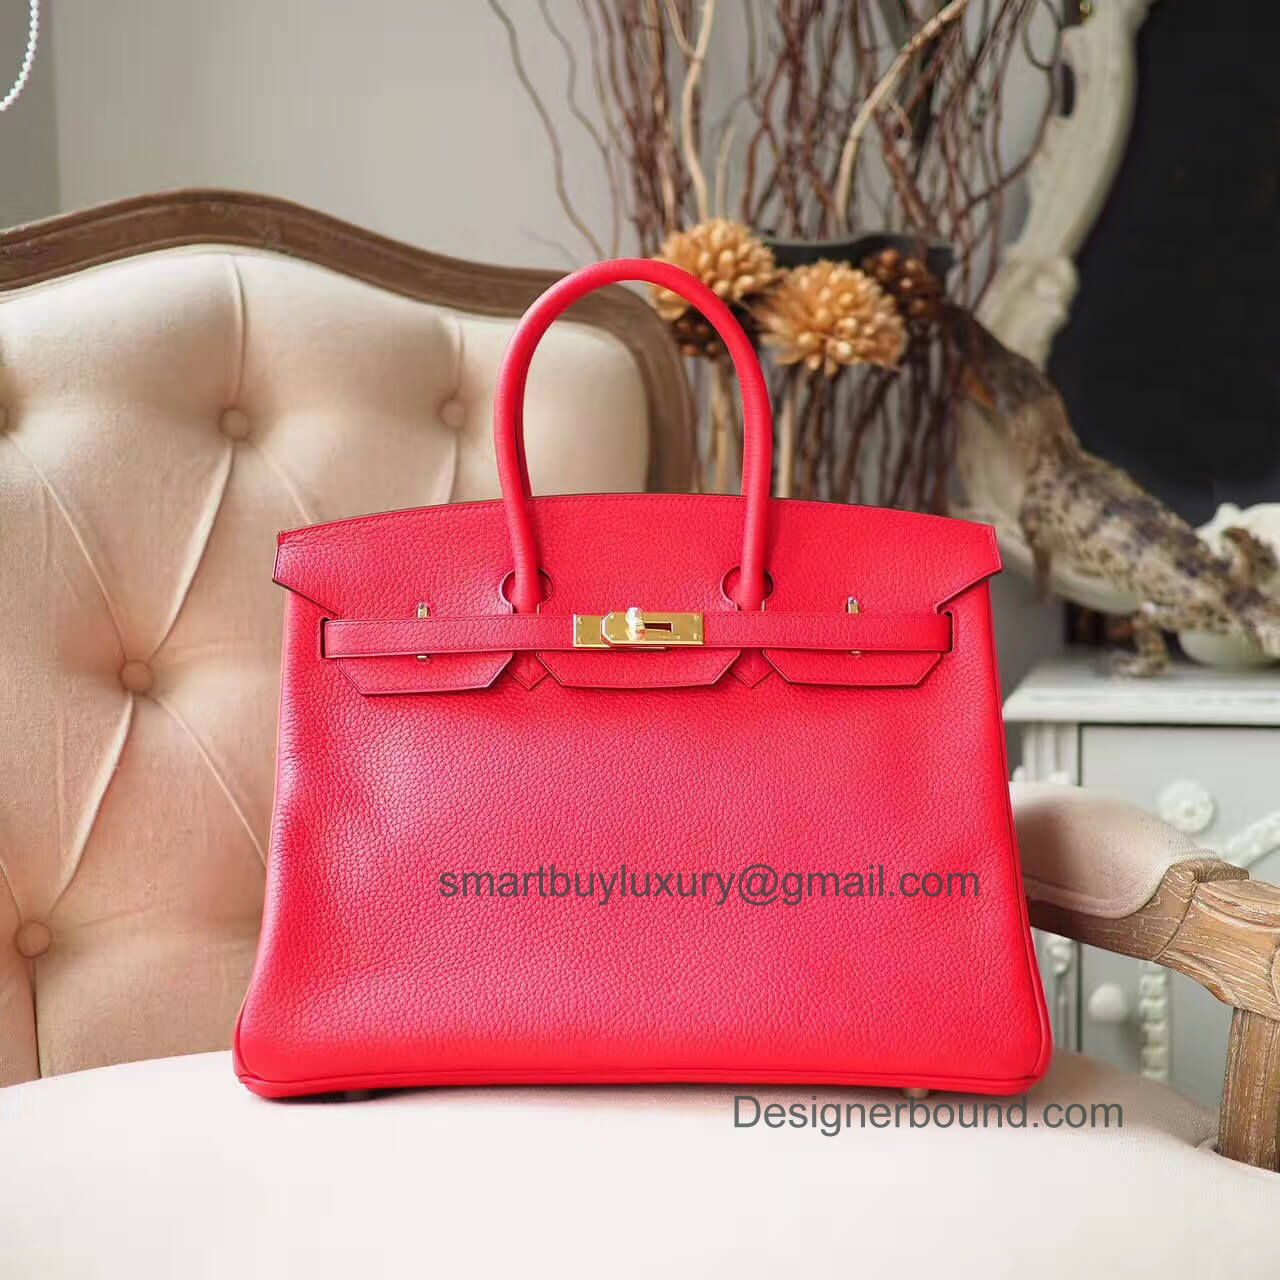 Hermes Birkin 35 Purse in q5 Rouge Casaque Togo GHW